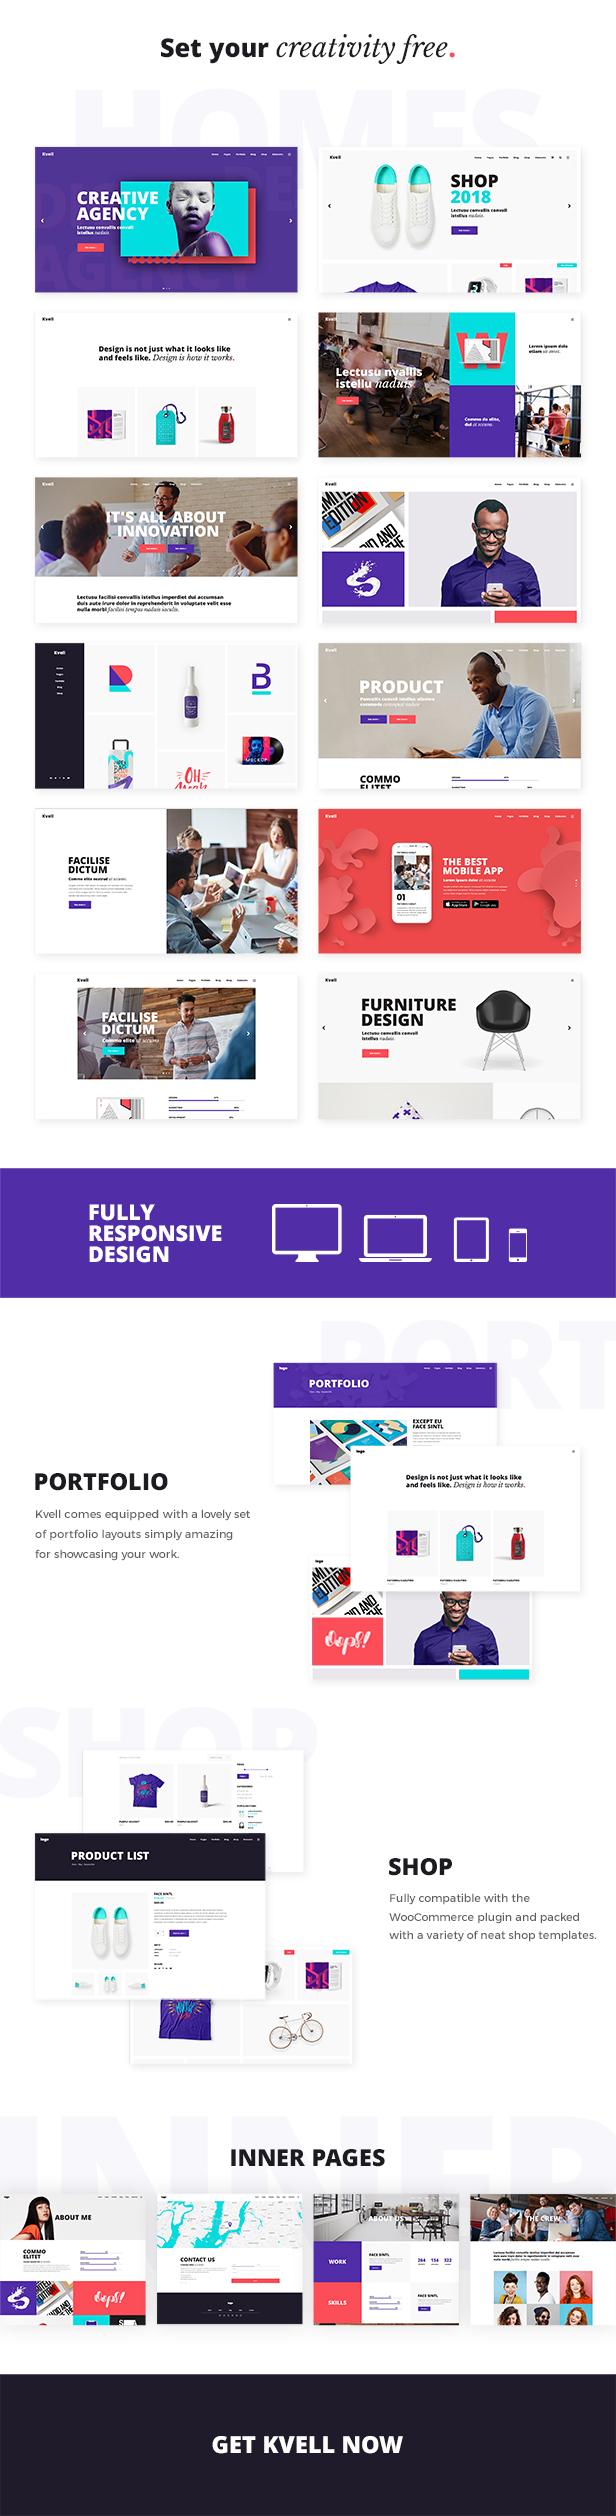 Kvell – A Creative Multipurpose Theme for Freelancers and Agencies (Creative)